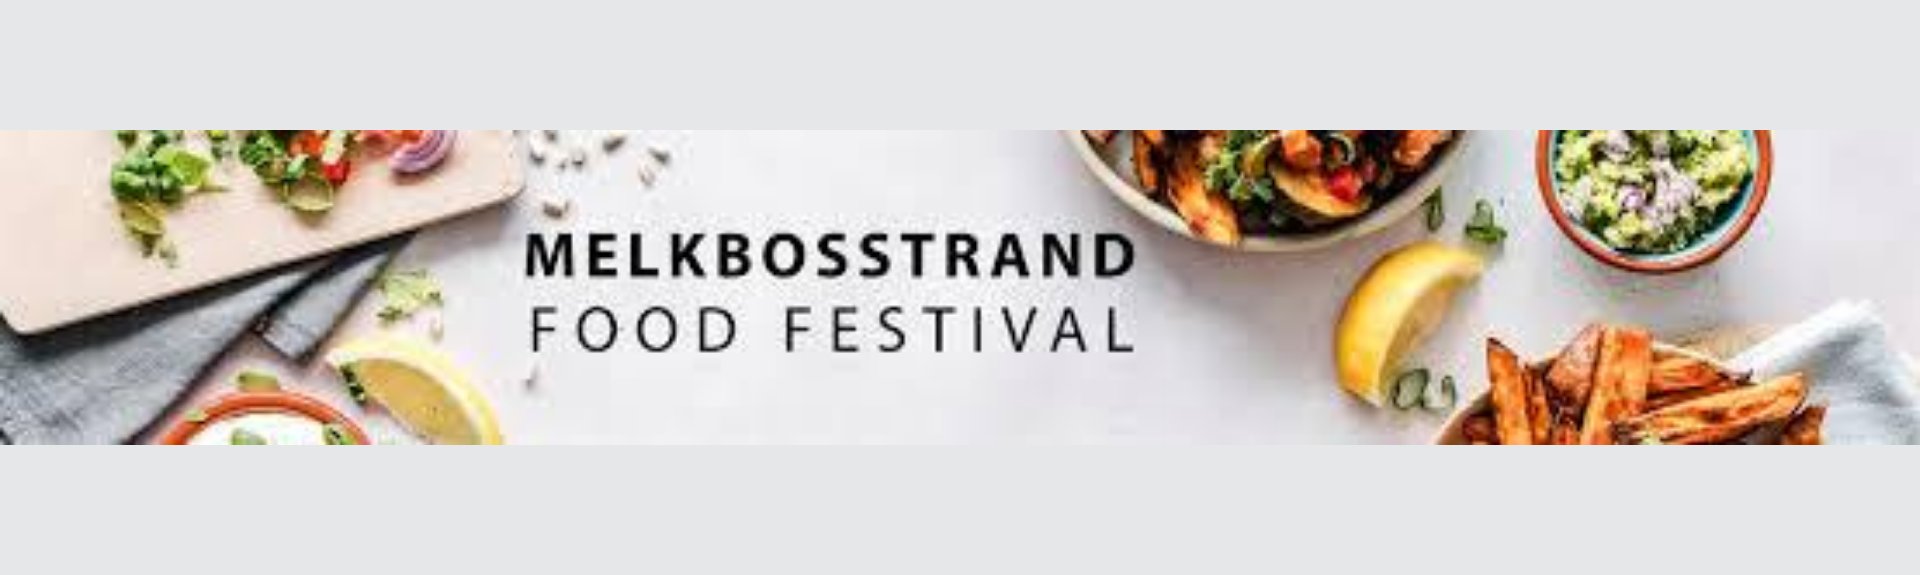 Melkbosstrand Food Festival | Cape Town | Things to do With Kids